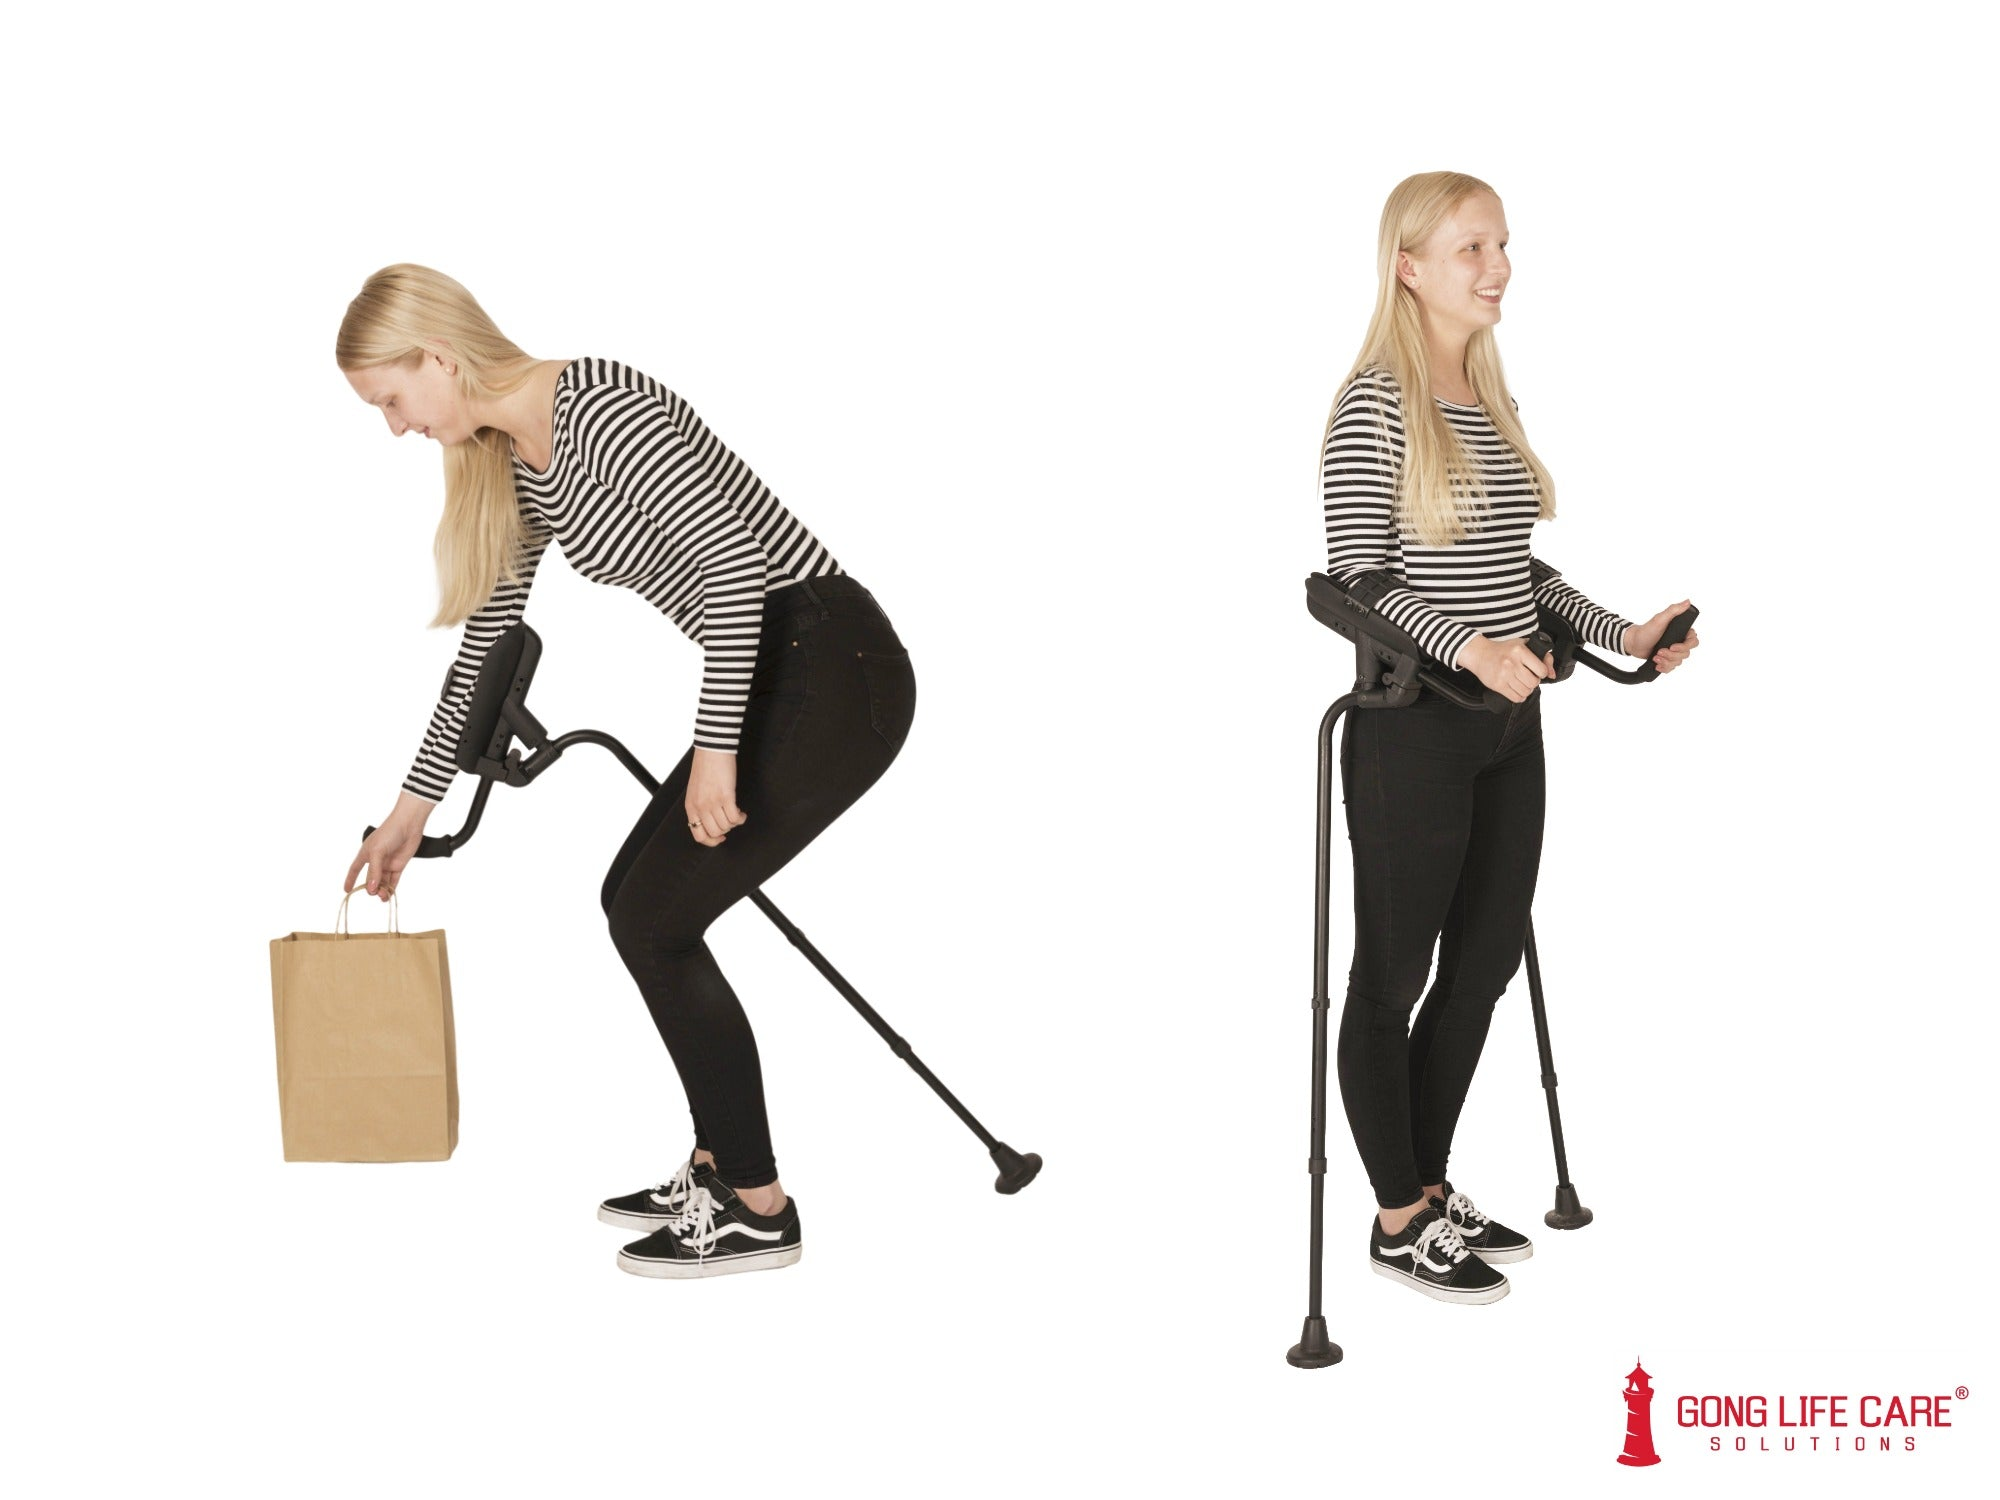 KMINA Mobility Crutches | Gong Life Care Solutions